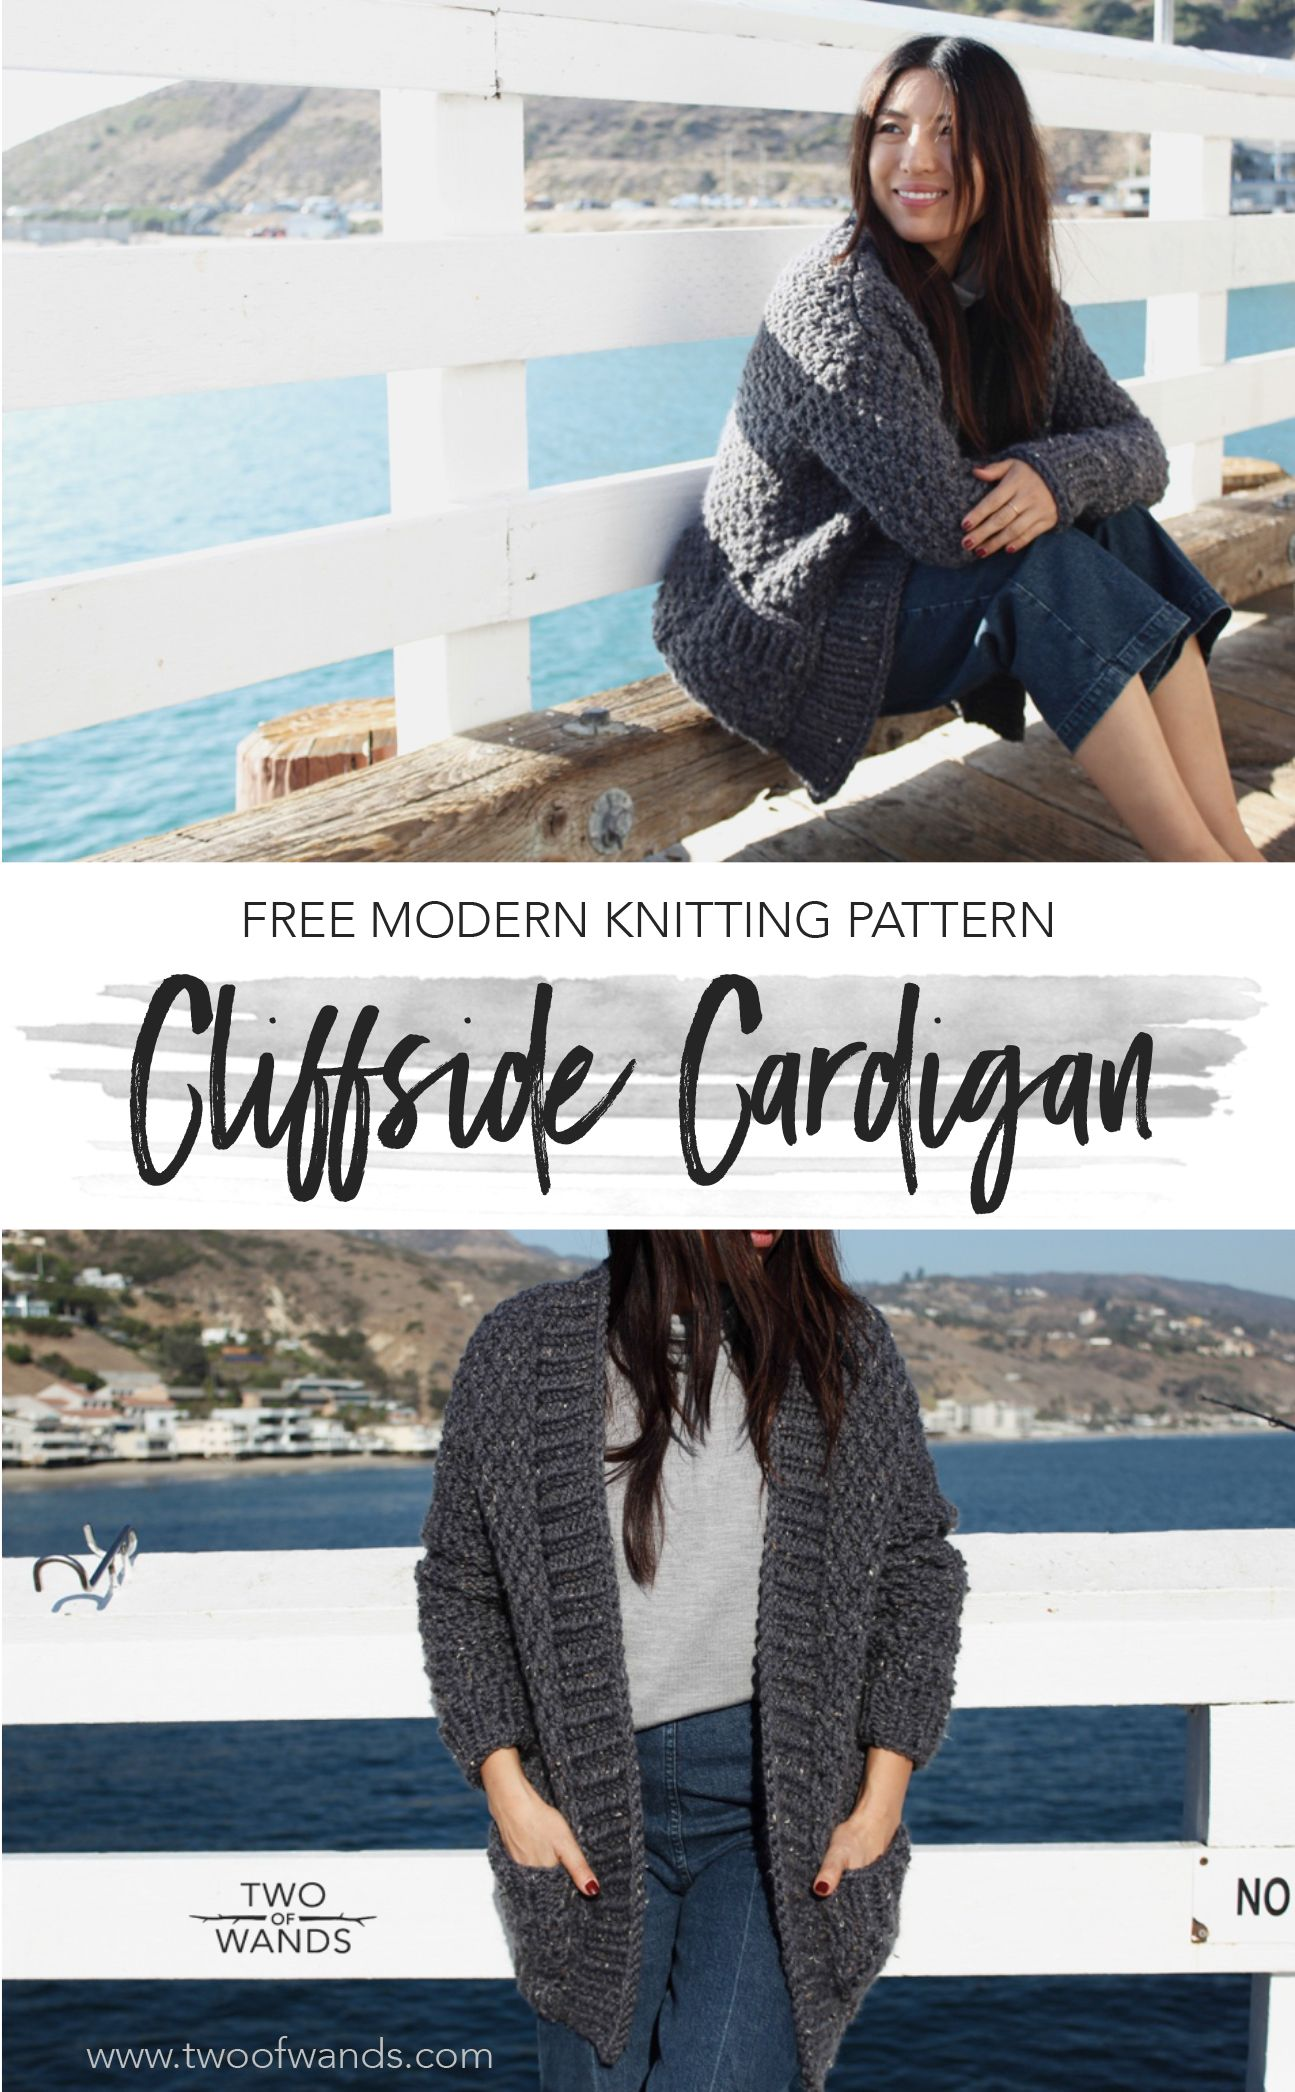 436dac626 Cliffside Cardigan Pattern by Two of Wands